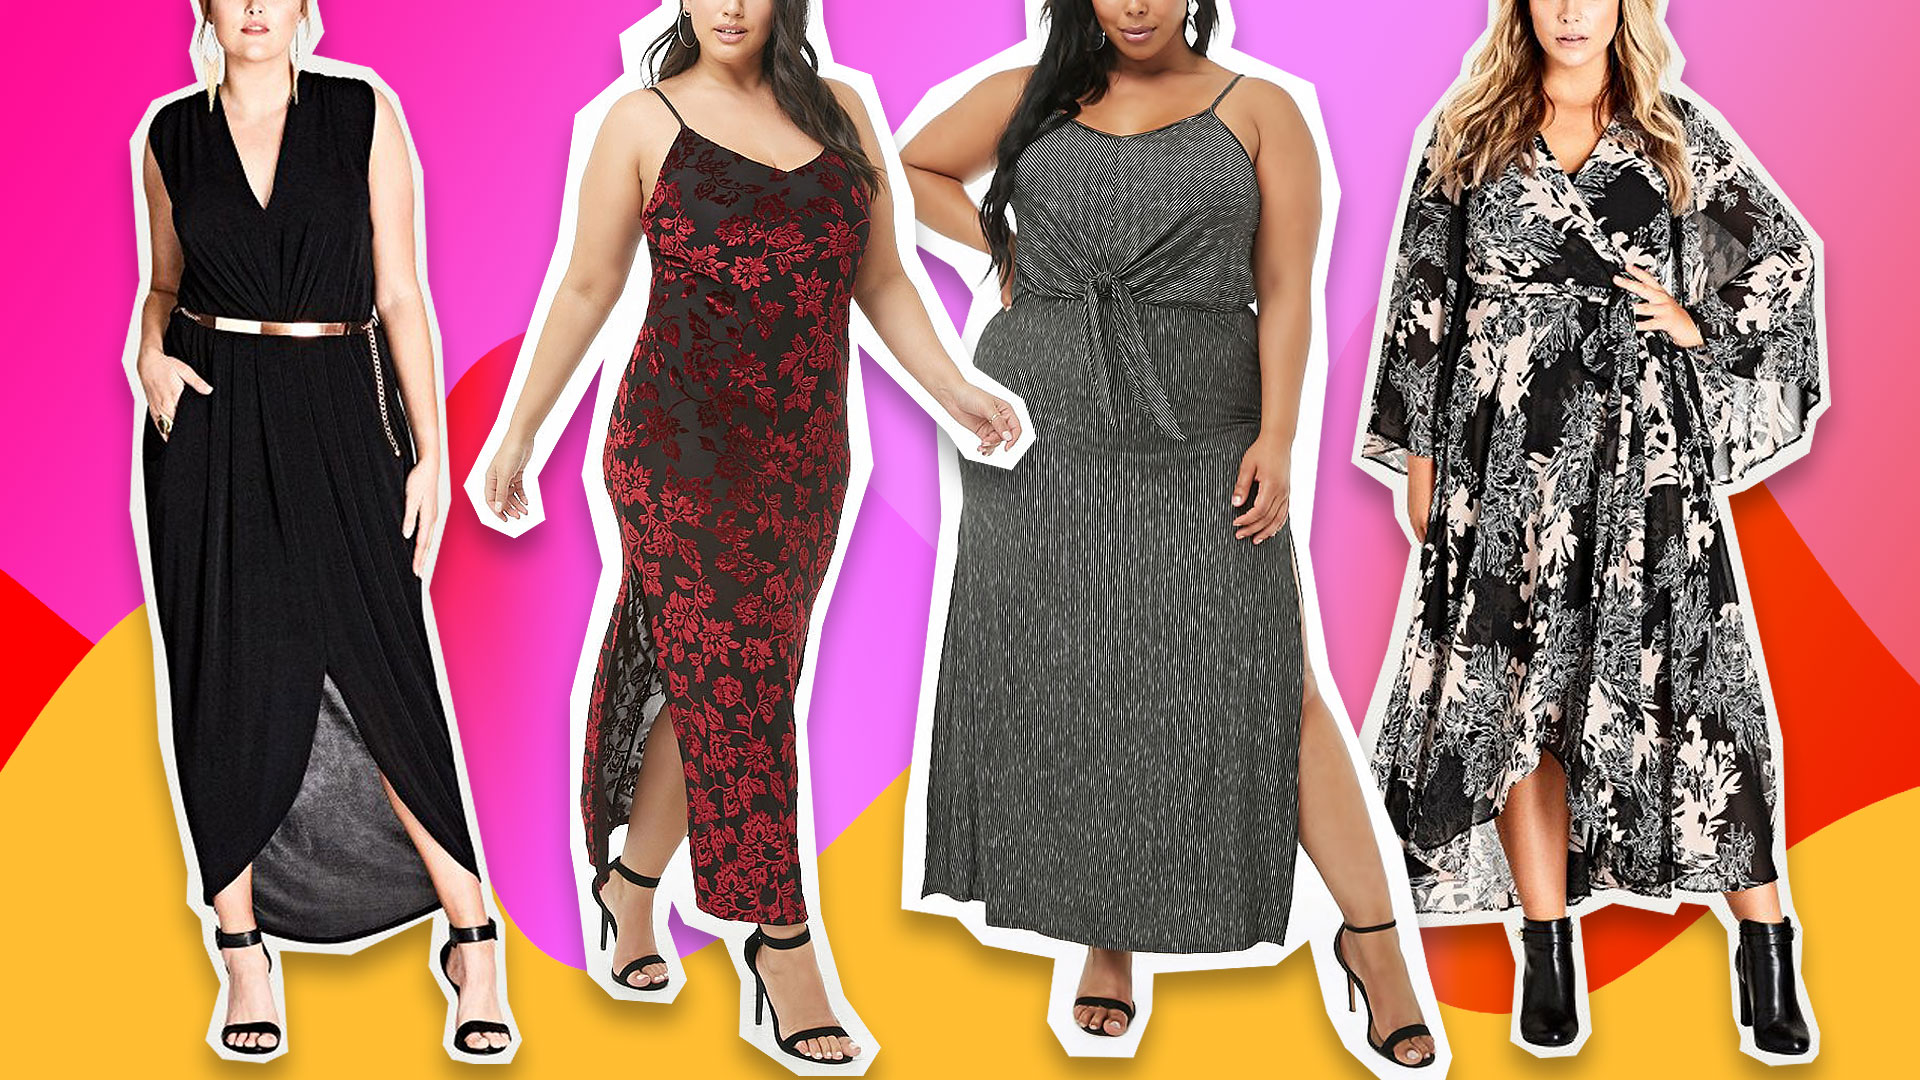 Discounted Plus-Size Winter Maxi Dresses So Cute, You'll Wonder Why They're on Sale